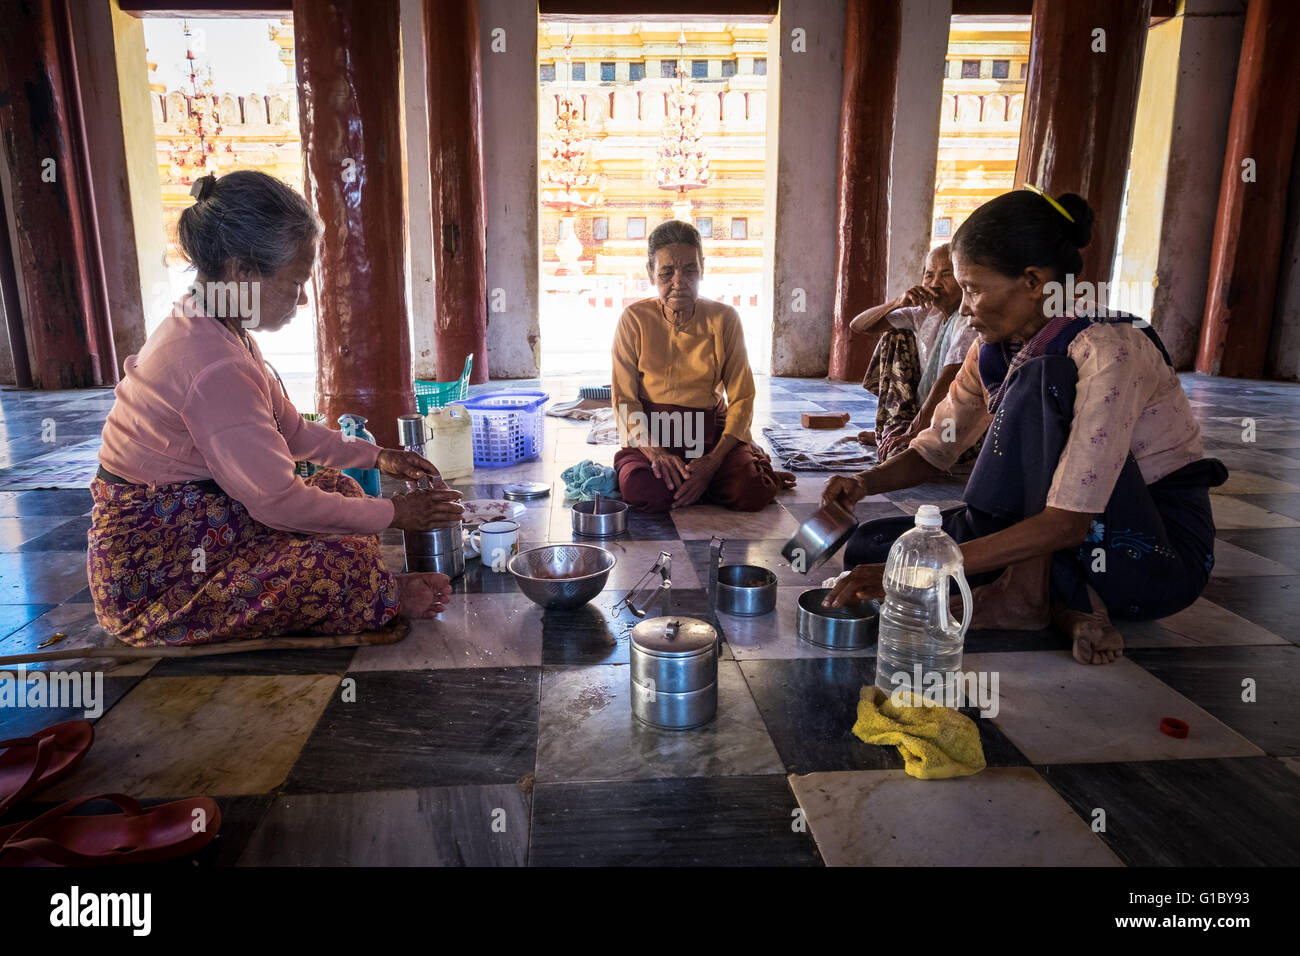 A group of elderly women eating lunch in the Shwezigon Pagoda, Nyaung-U. - Stock Image